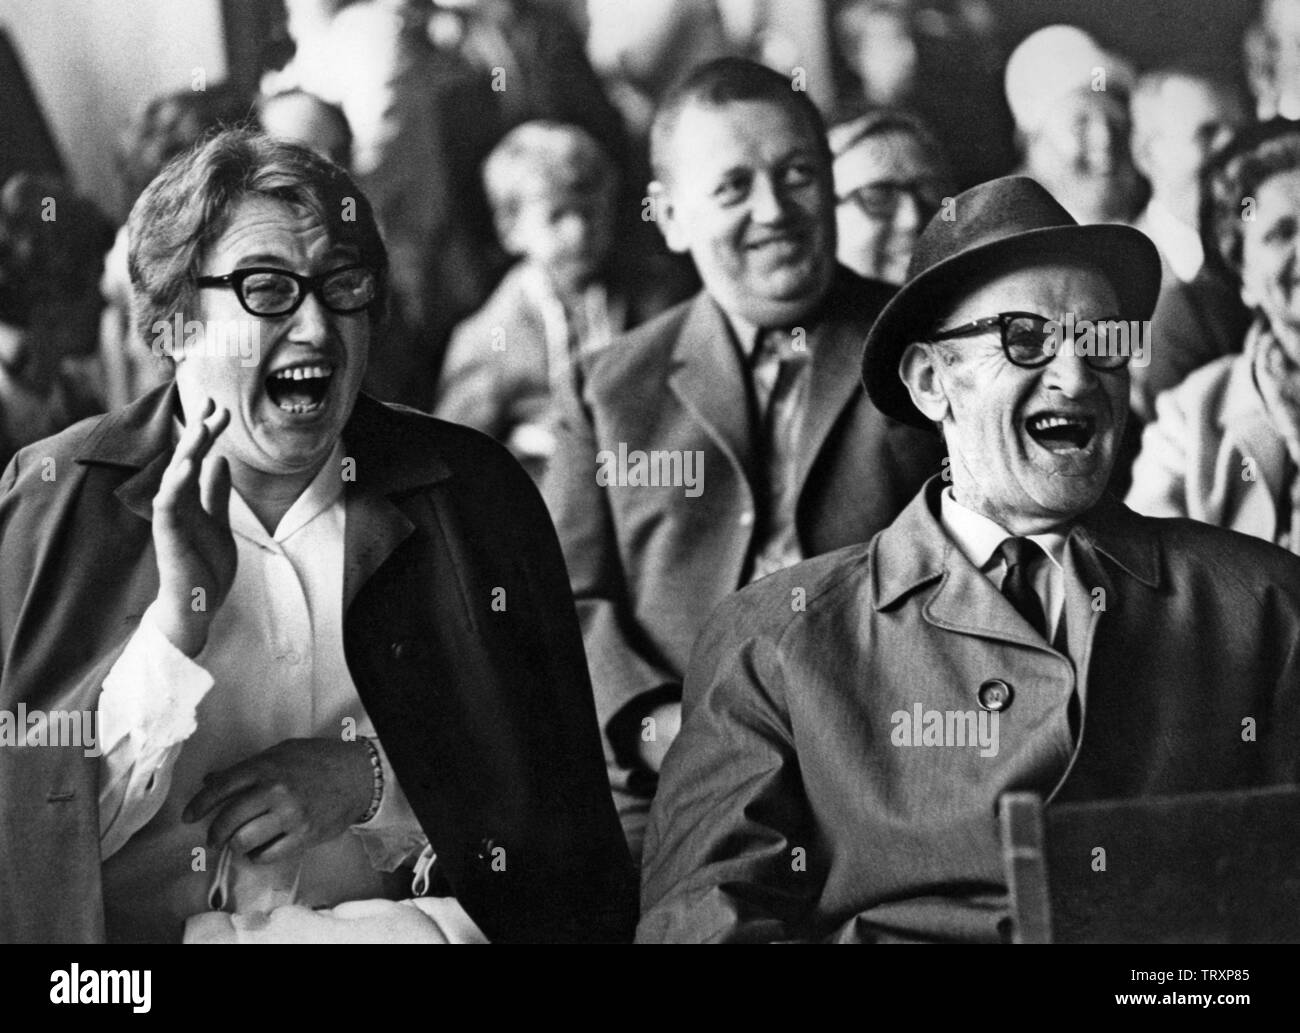 Audience in the 1960s. They are all laughing at something or someone on the  stage. Sweden 1960s Stock Photo - Alamy